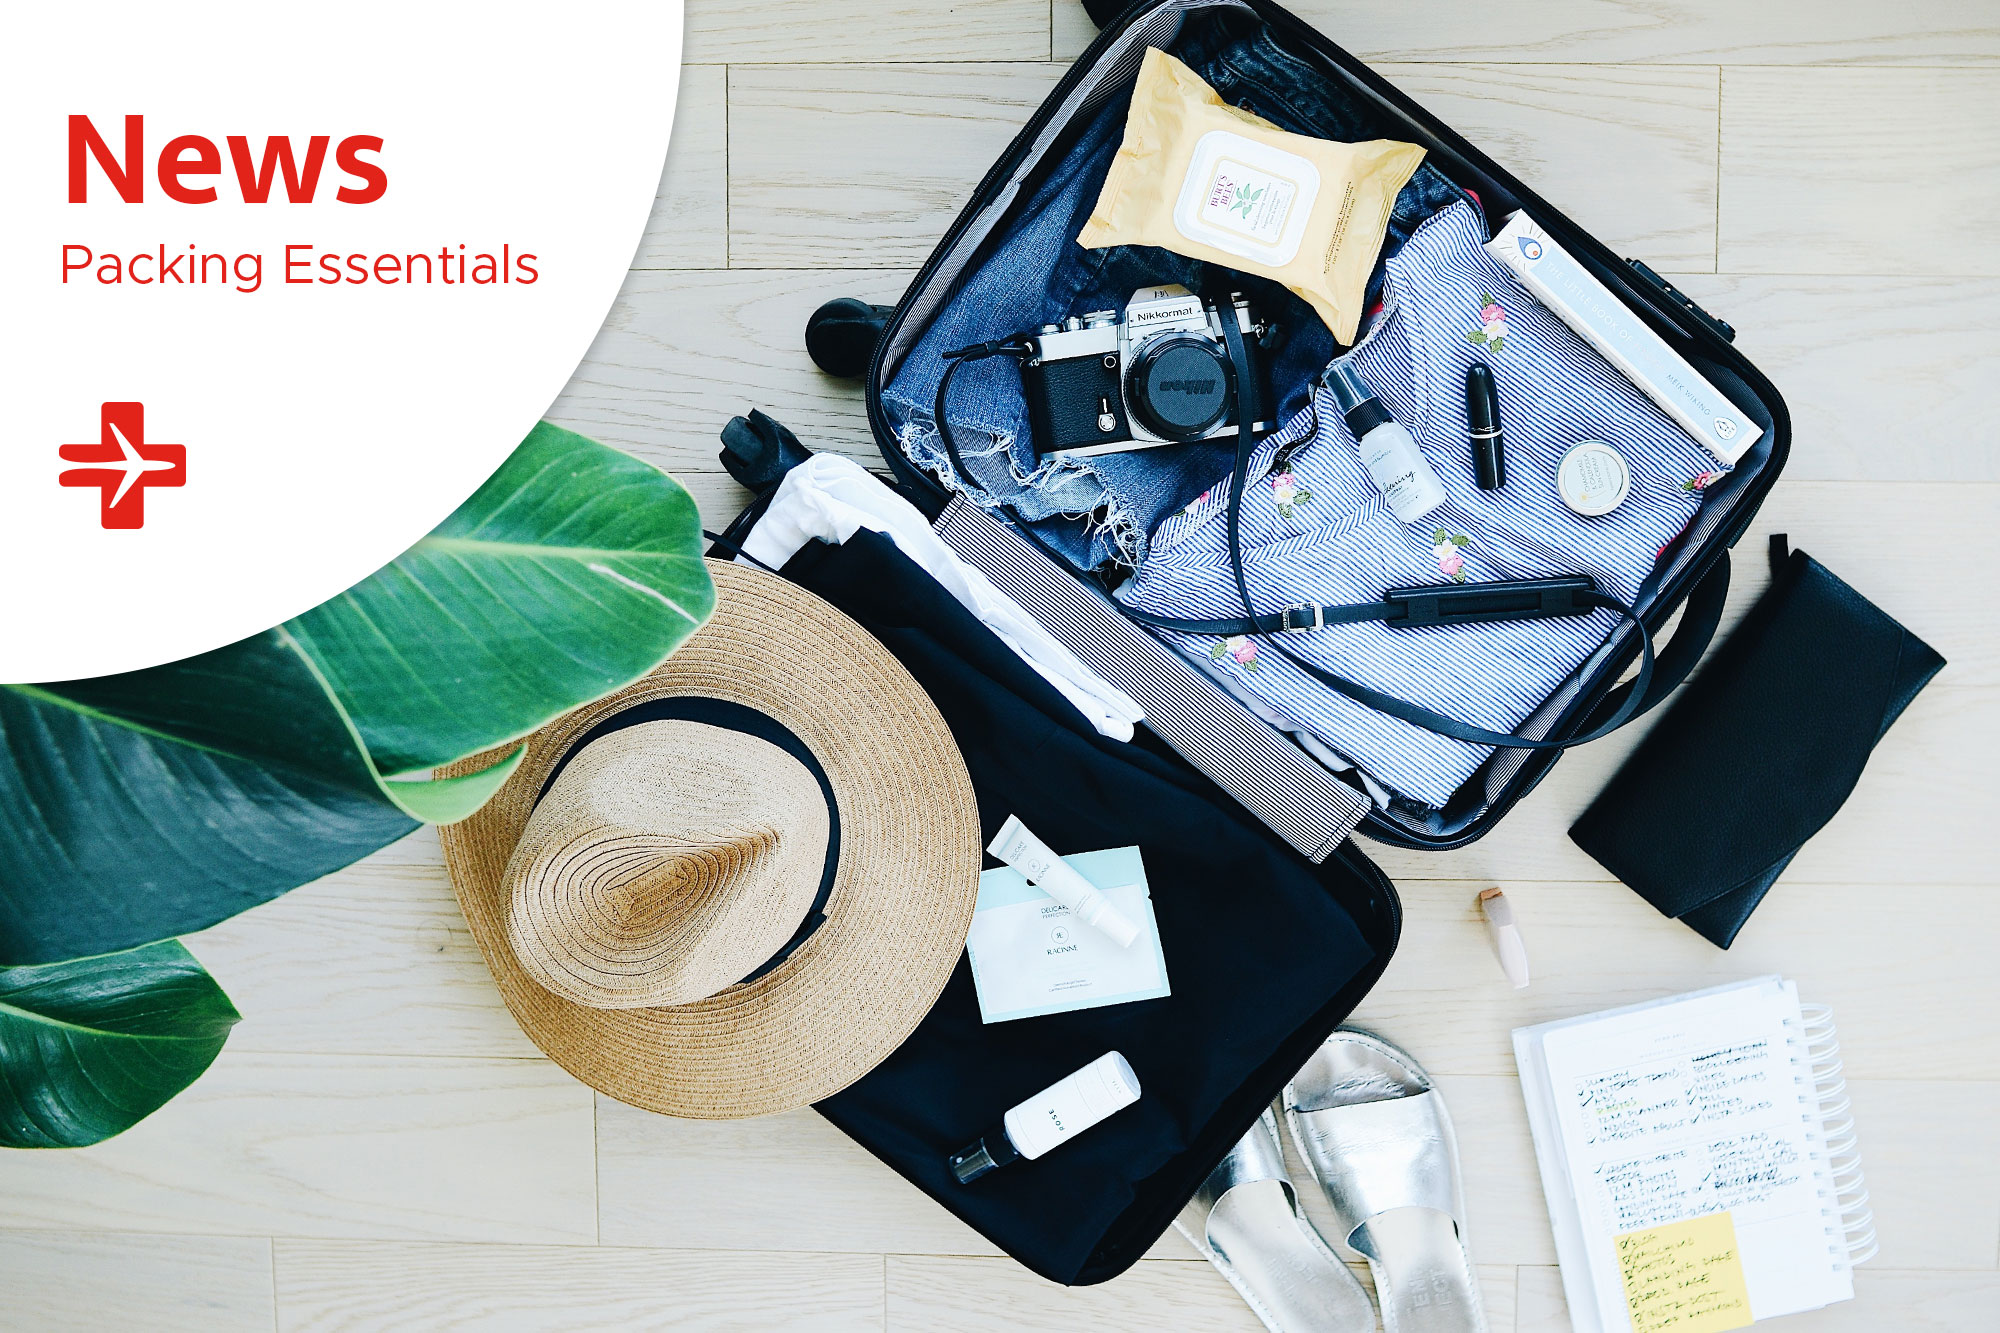 26-01-TravelSafe-News-Packing-Essentials